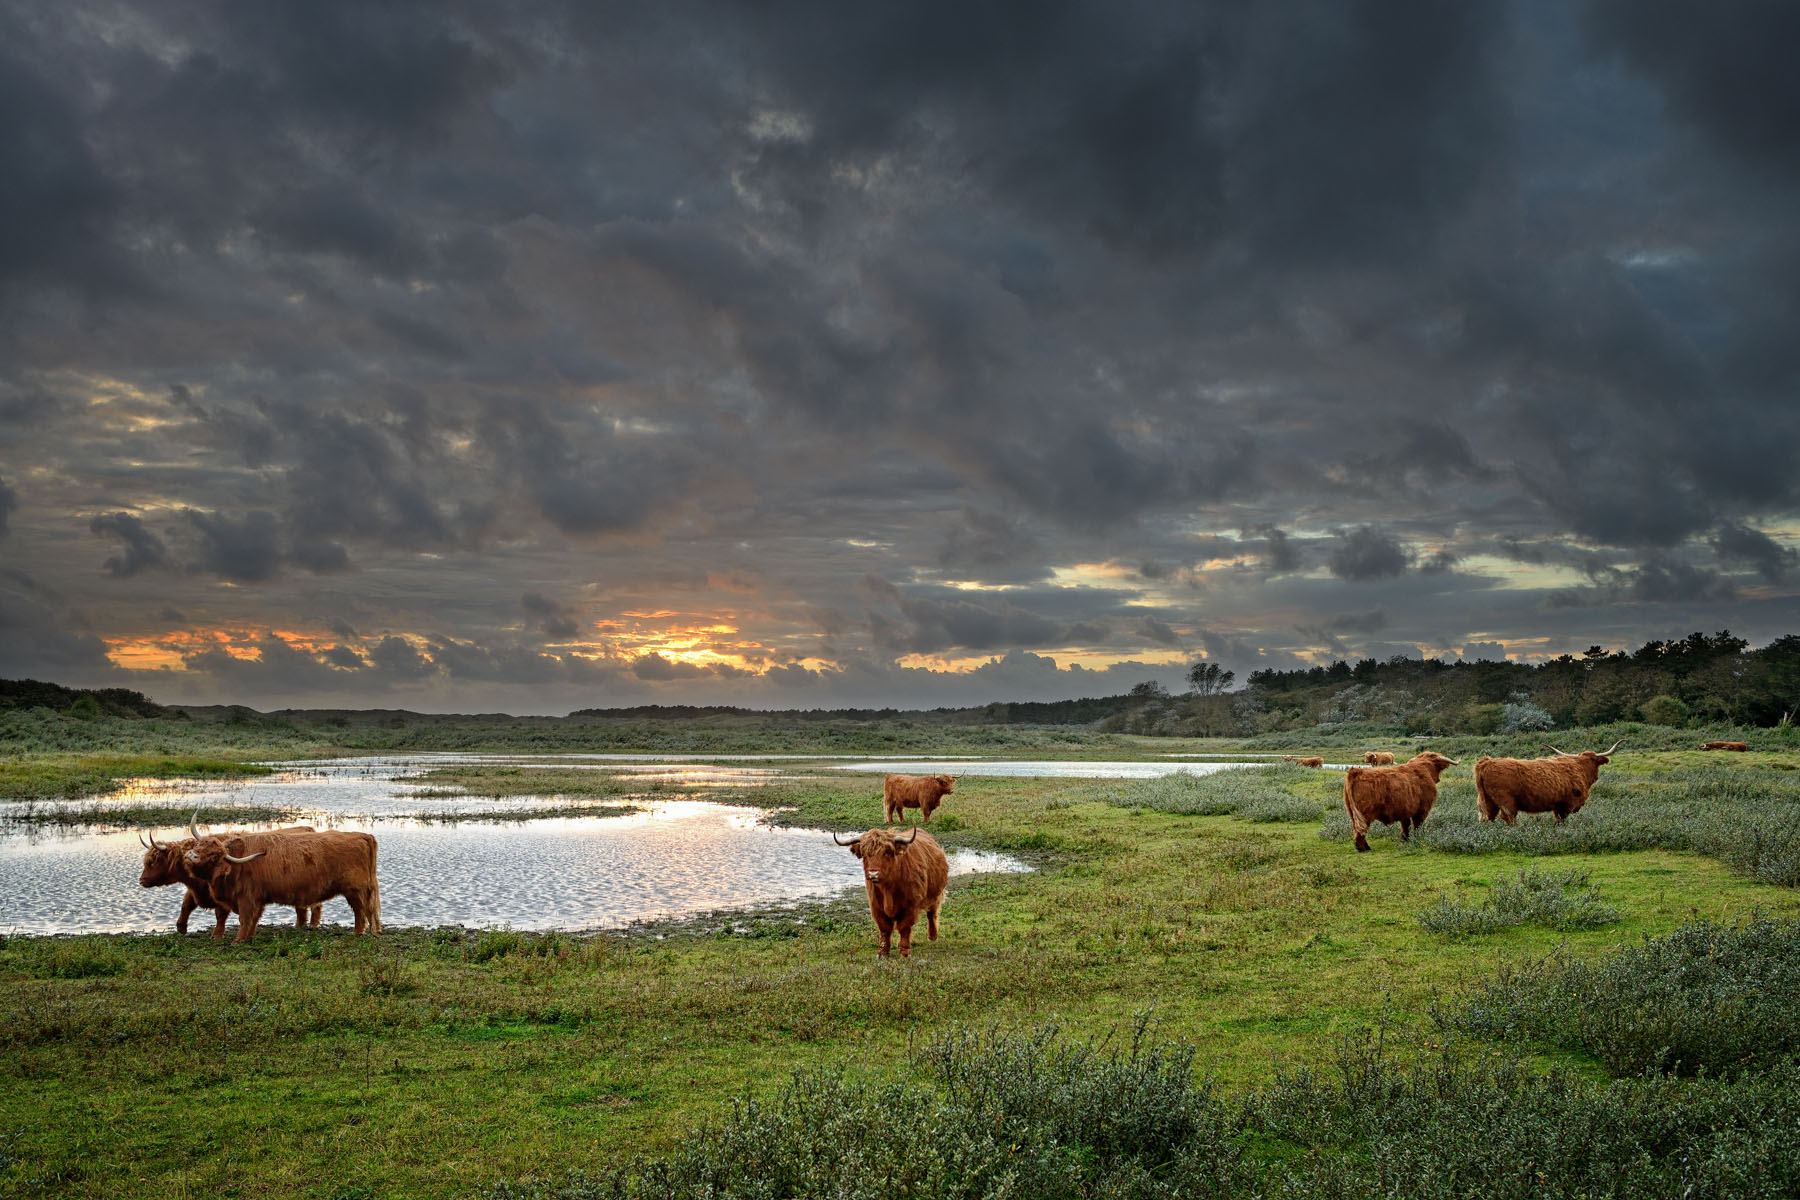 sunset with rain clouds and cattle